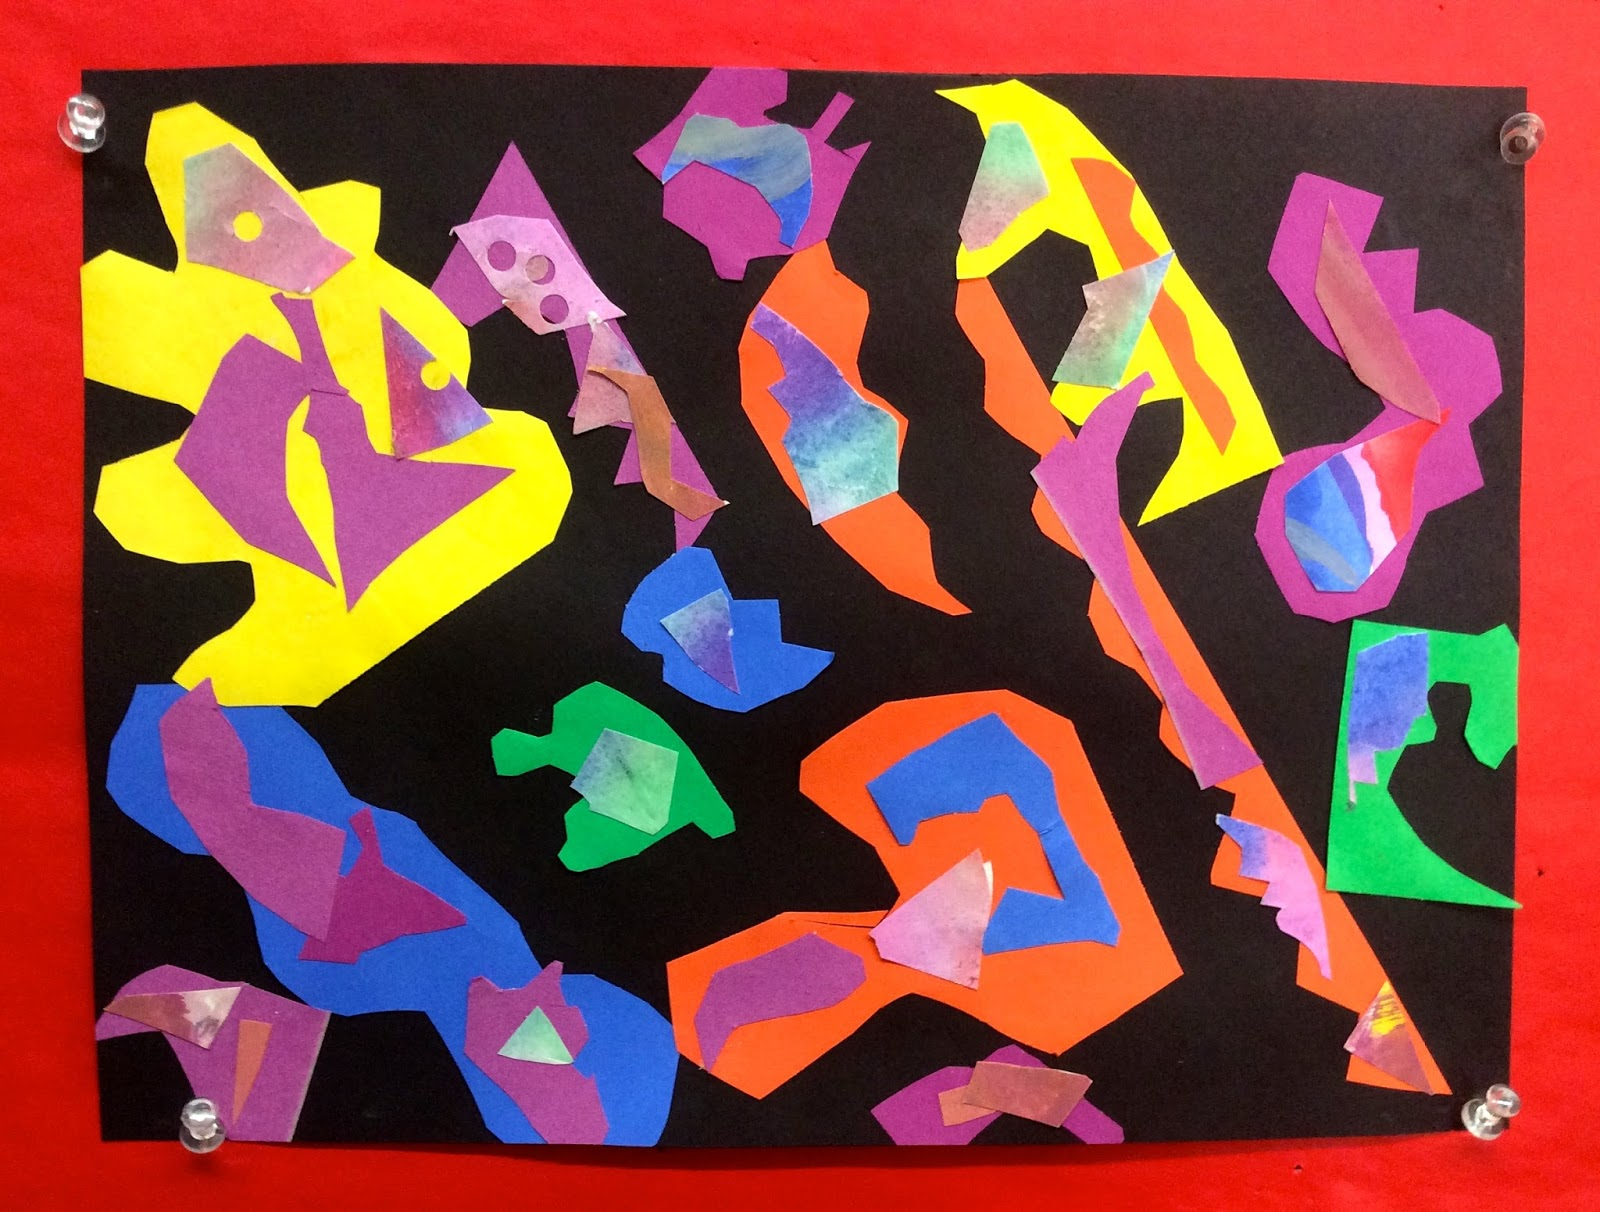 Ms Curry S Art Room 1st Grade Henri Matisse Inspired Collage